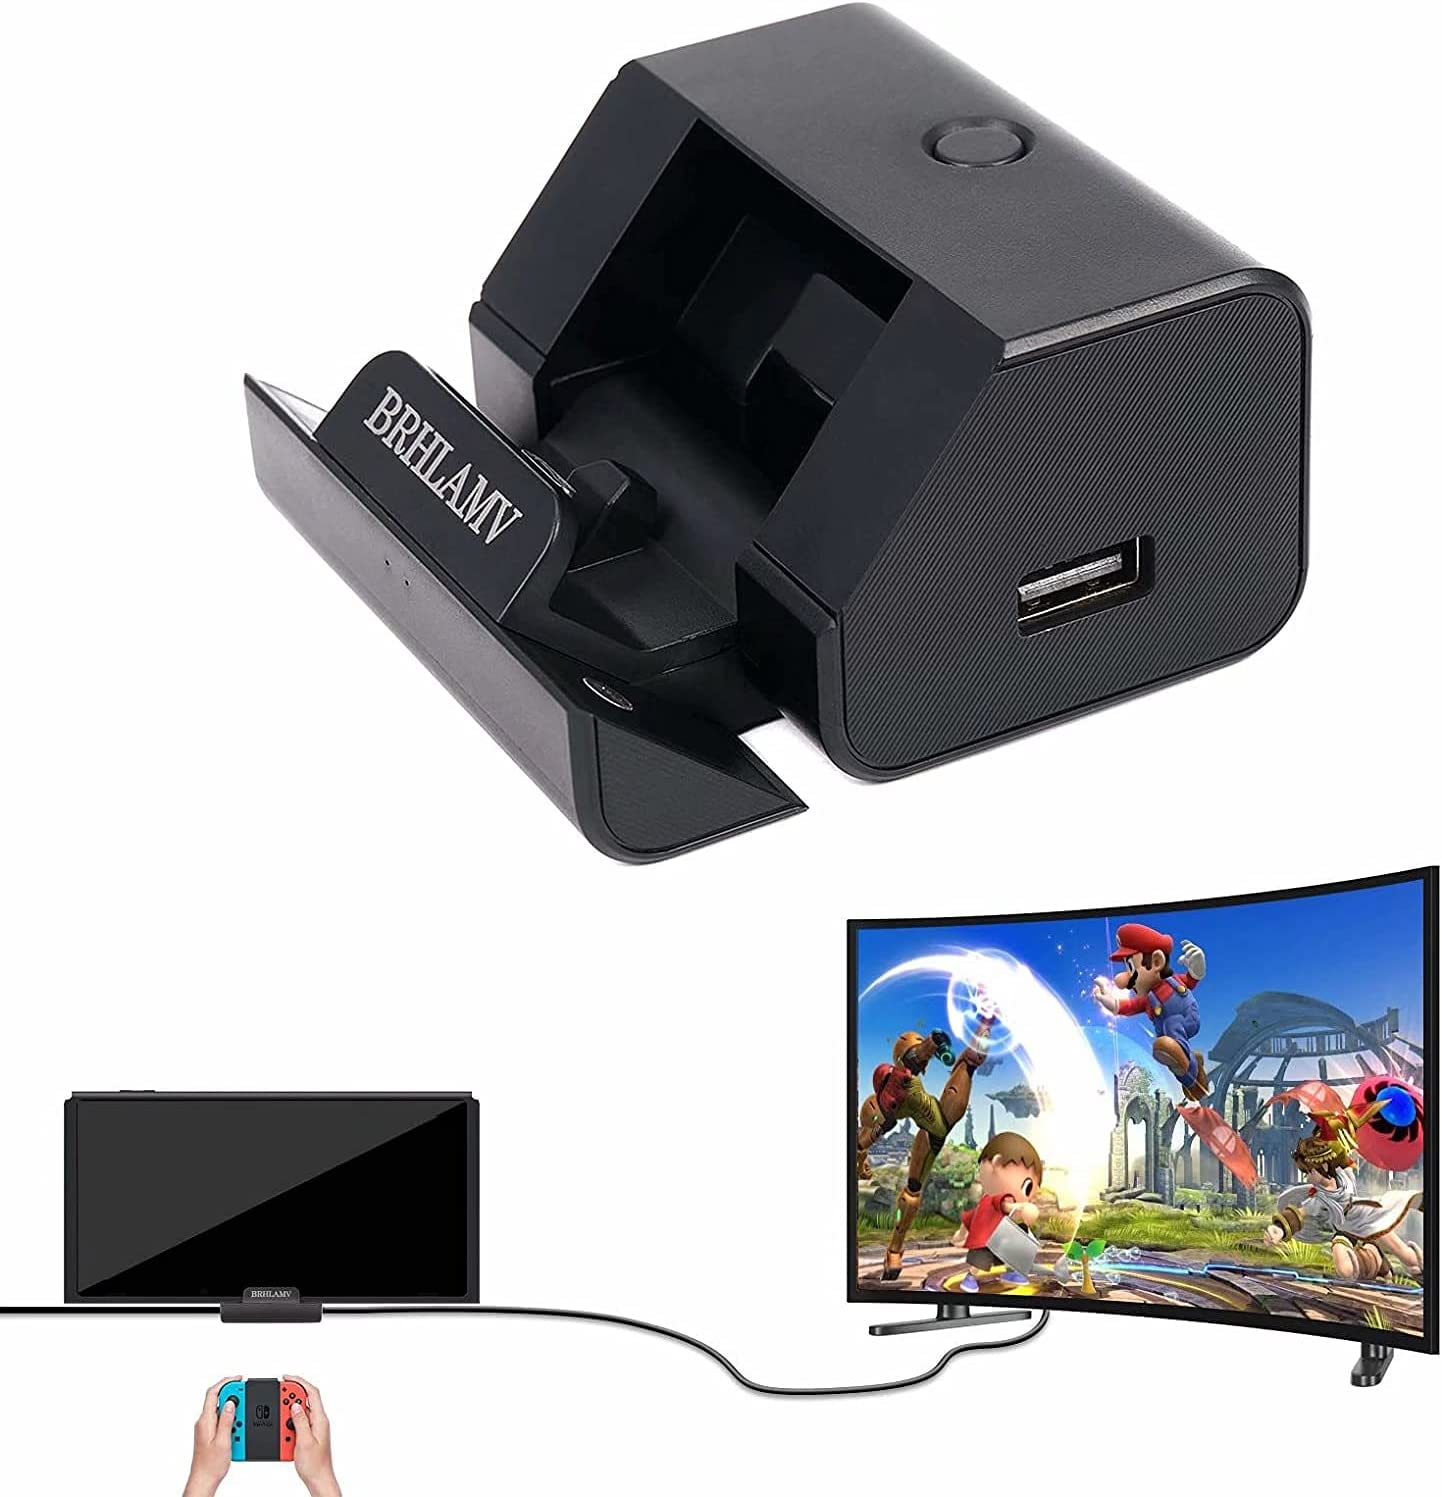 Portable Dock for Switch BRHLAMV Cradle Hub Indefinitely Connecto Ranking TOP19 Mini Small